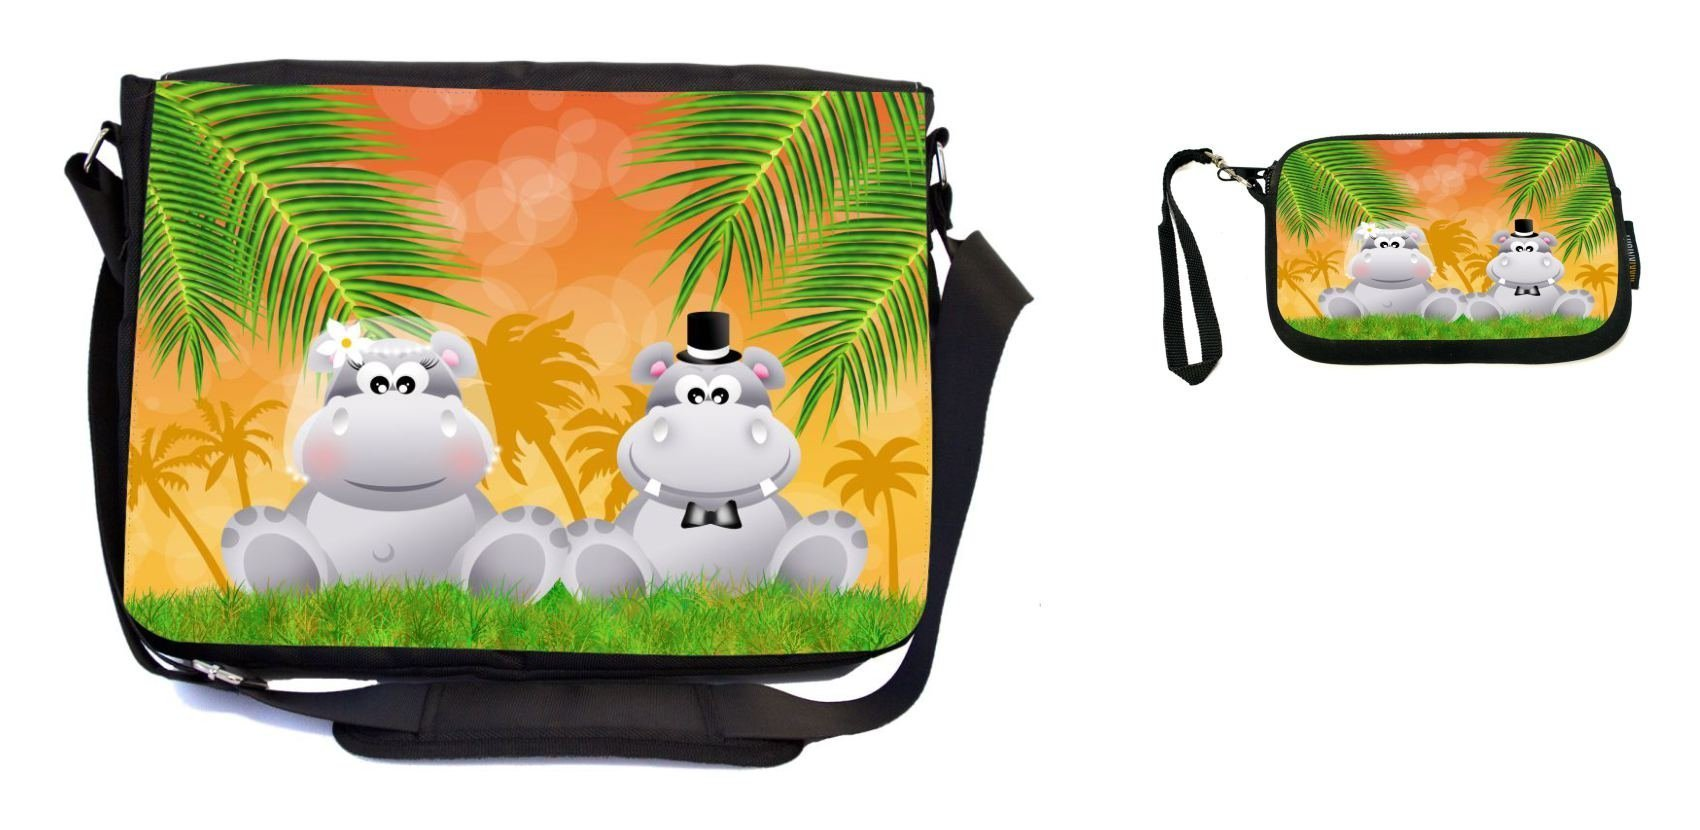 Rikki Knight Hippos in Love Wedding Illustration Design Messenger Bag - School Bag - Laptop Bag - with Padded Insert - Includes UKBK Premium Coin Purse